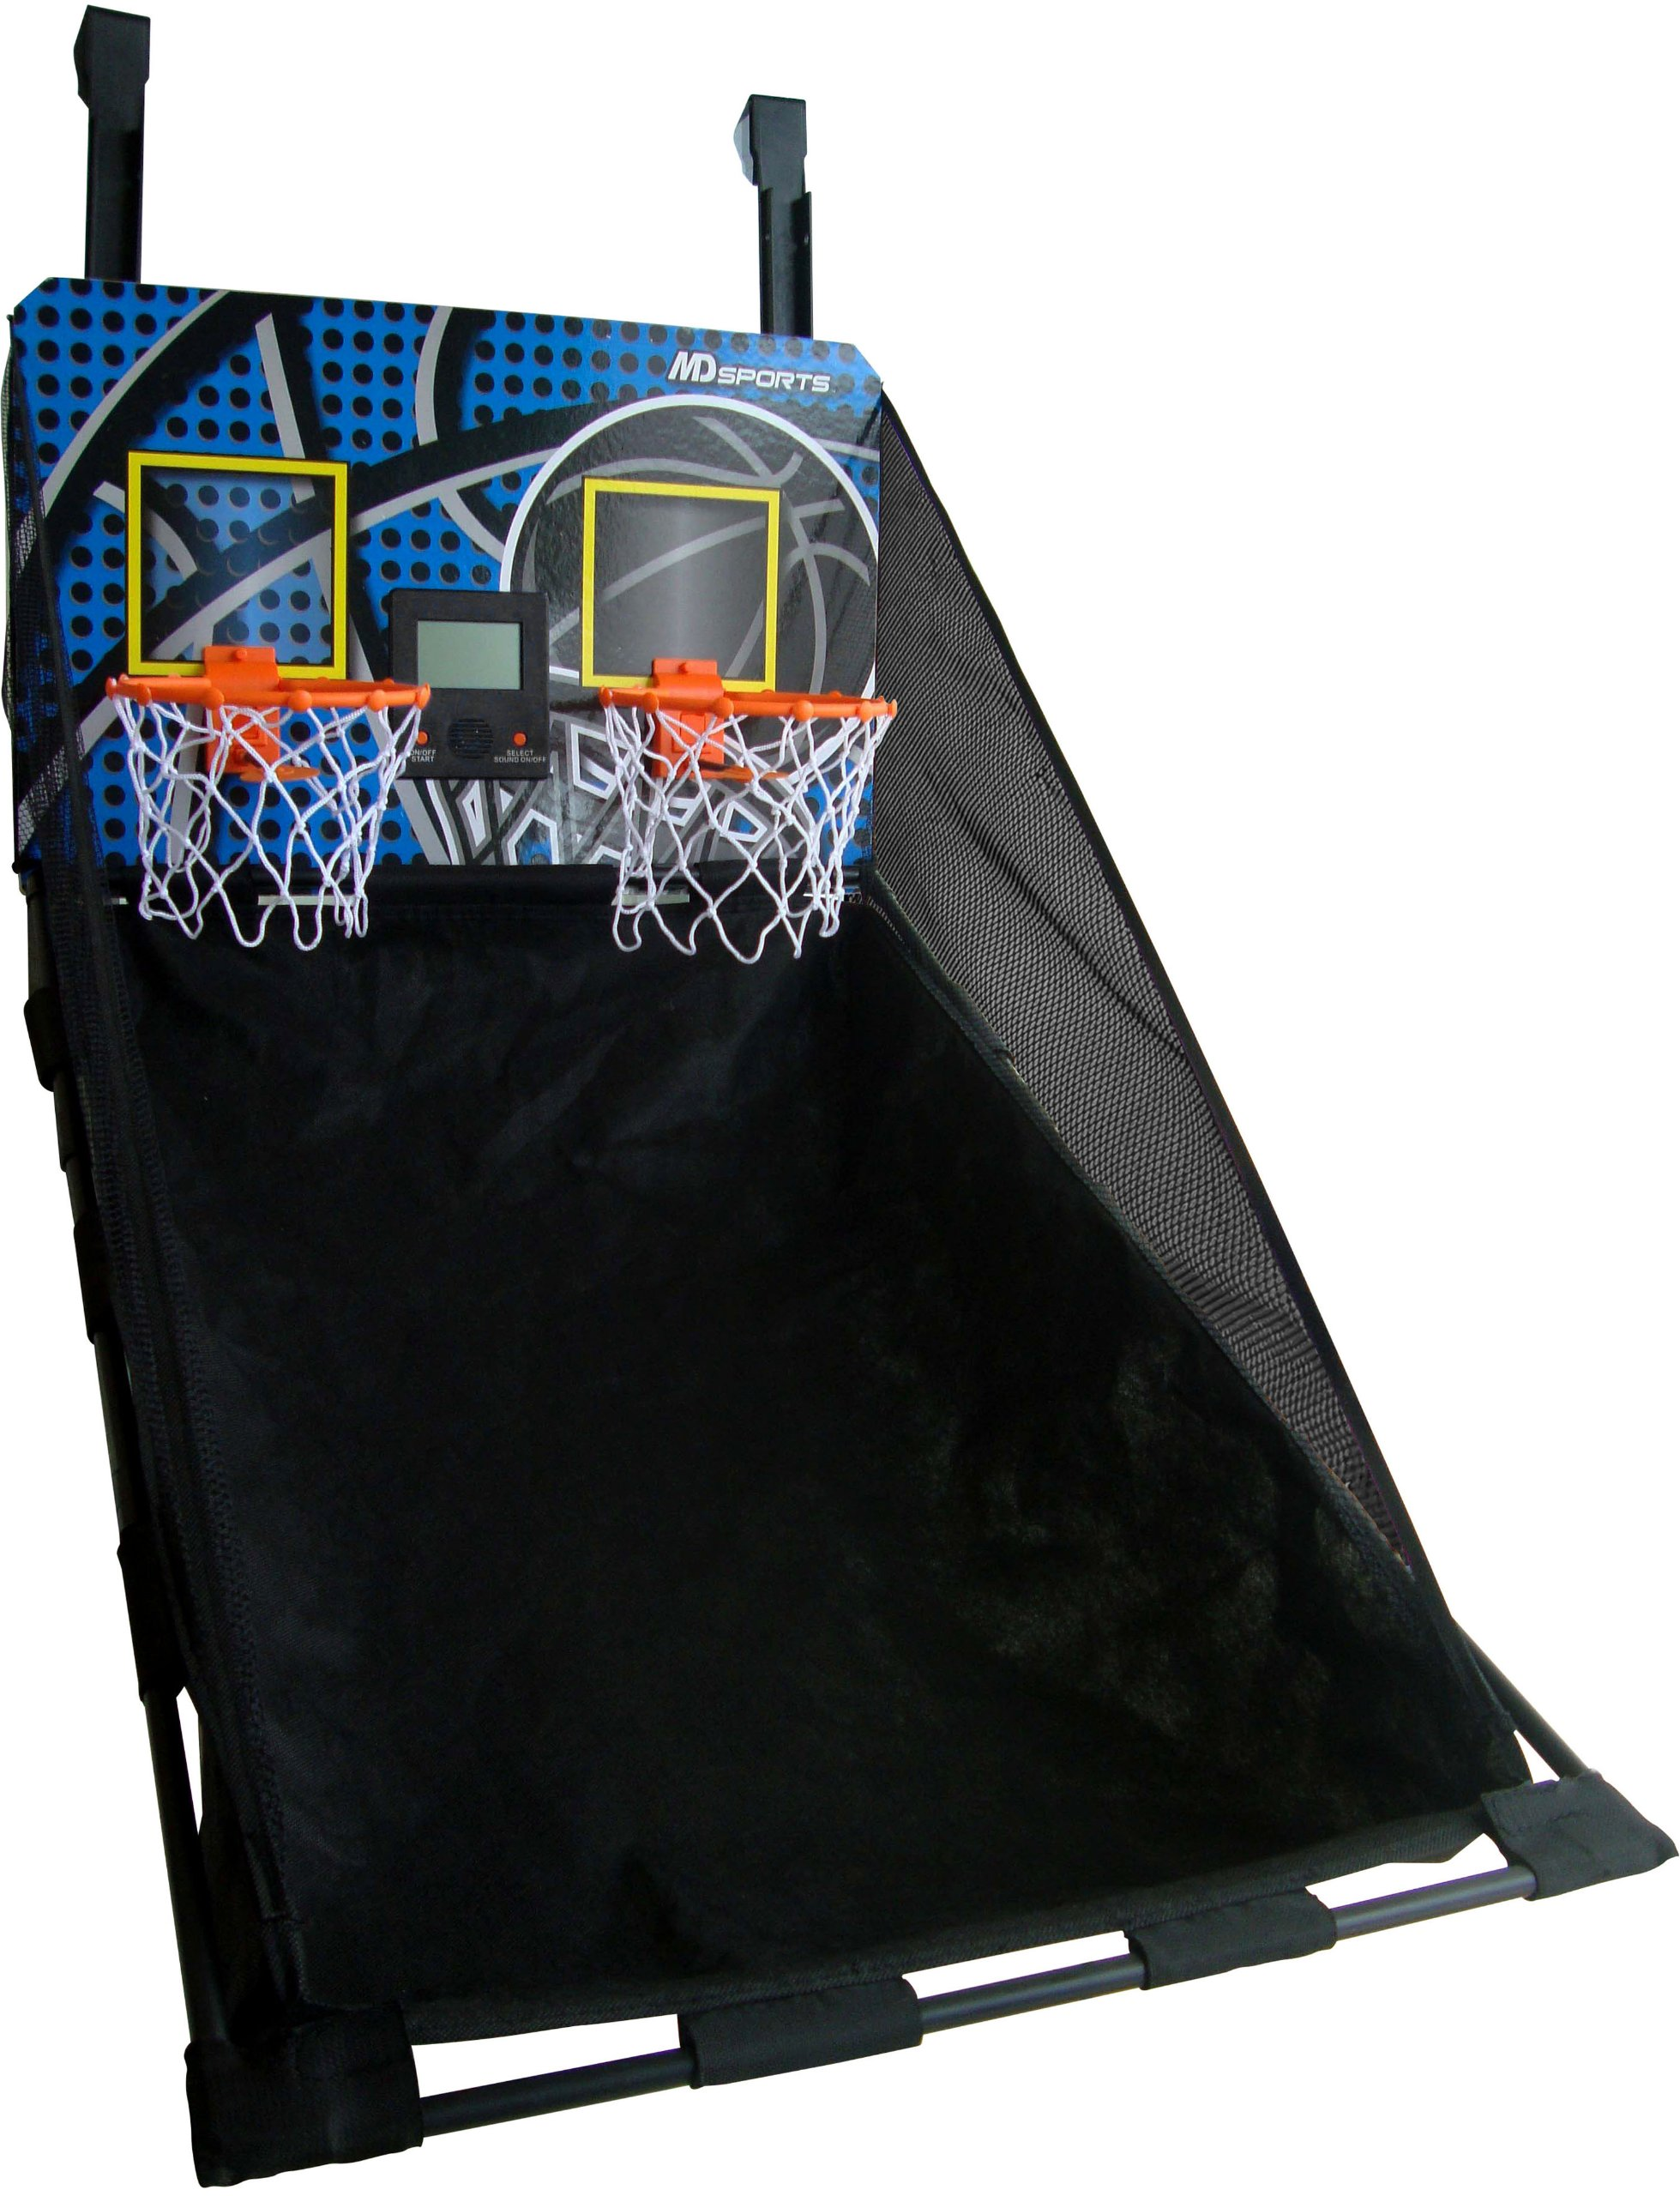 Medal Sports Door Hoops 2-Player Basketball Game Table, 34.5x22.125-Inch